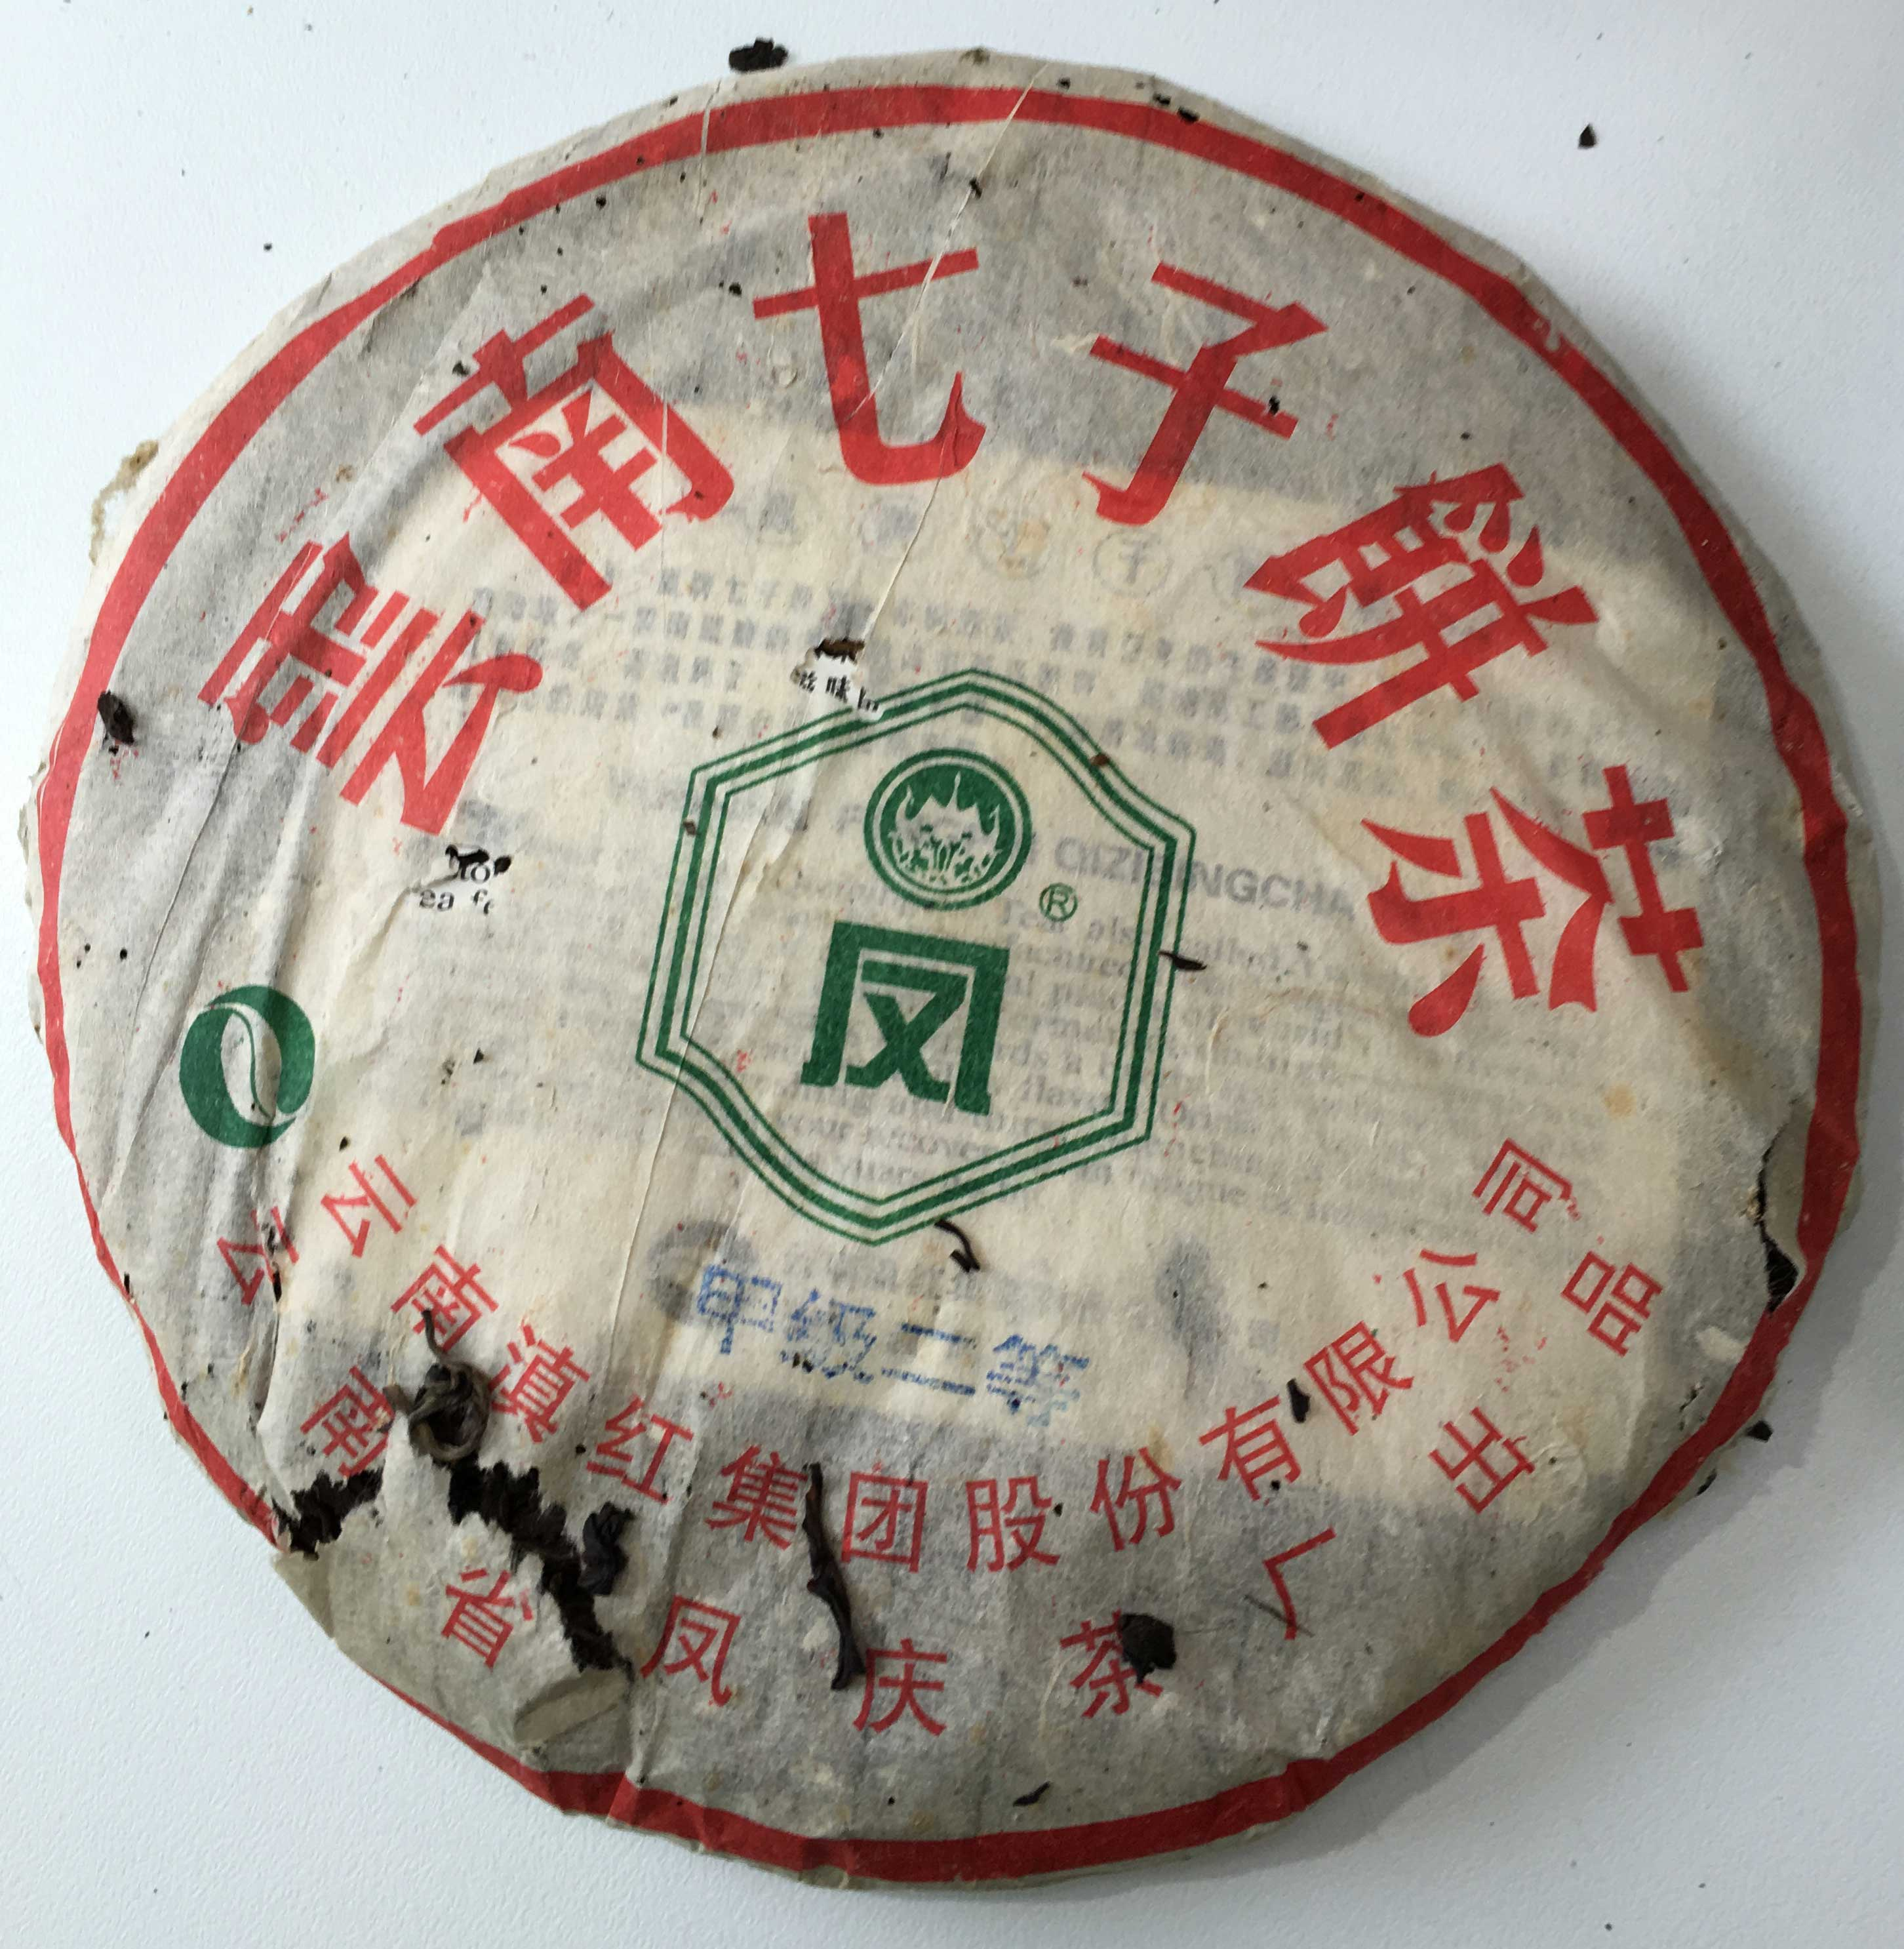 Feng Qing 2003 aged Puerh